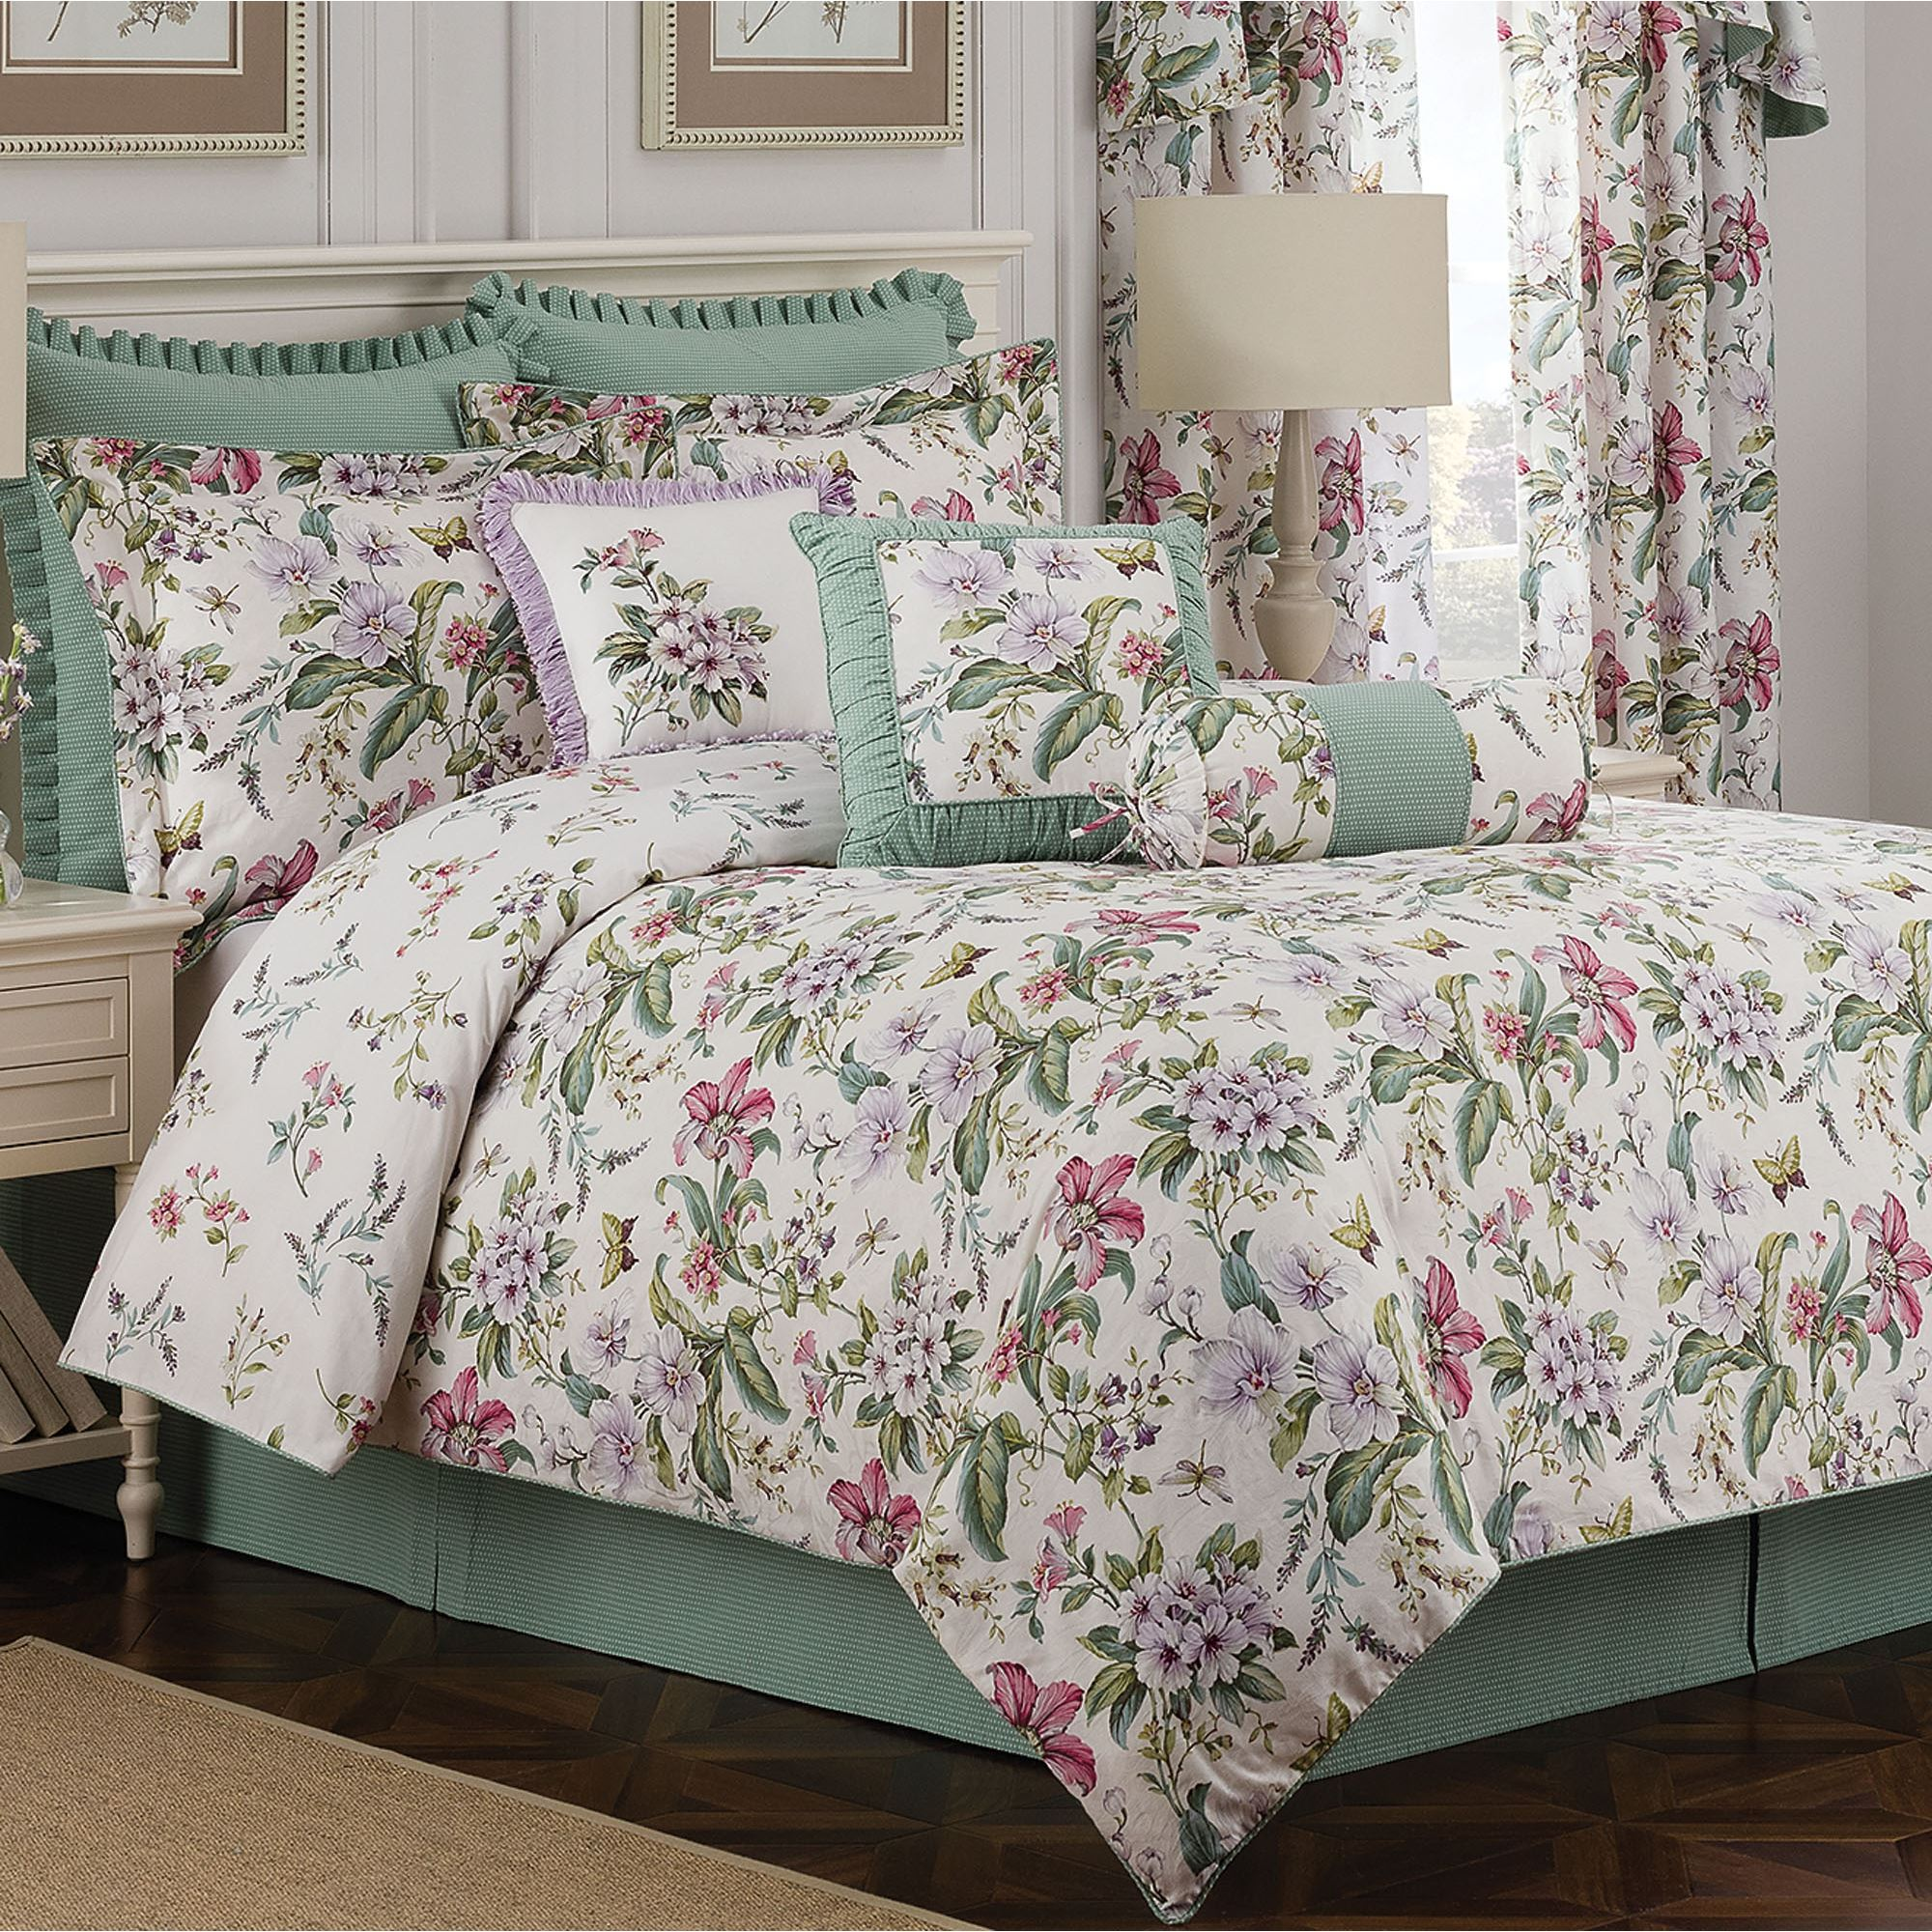 Palace Green Butterfly Floral Comforter Bedding